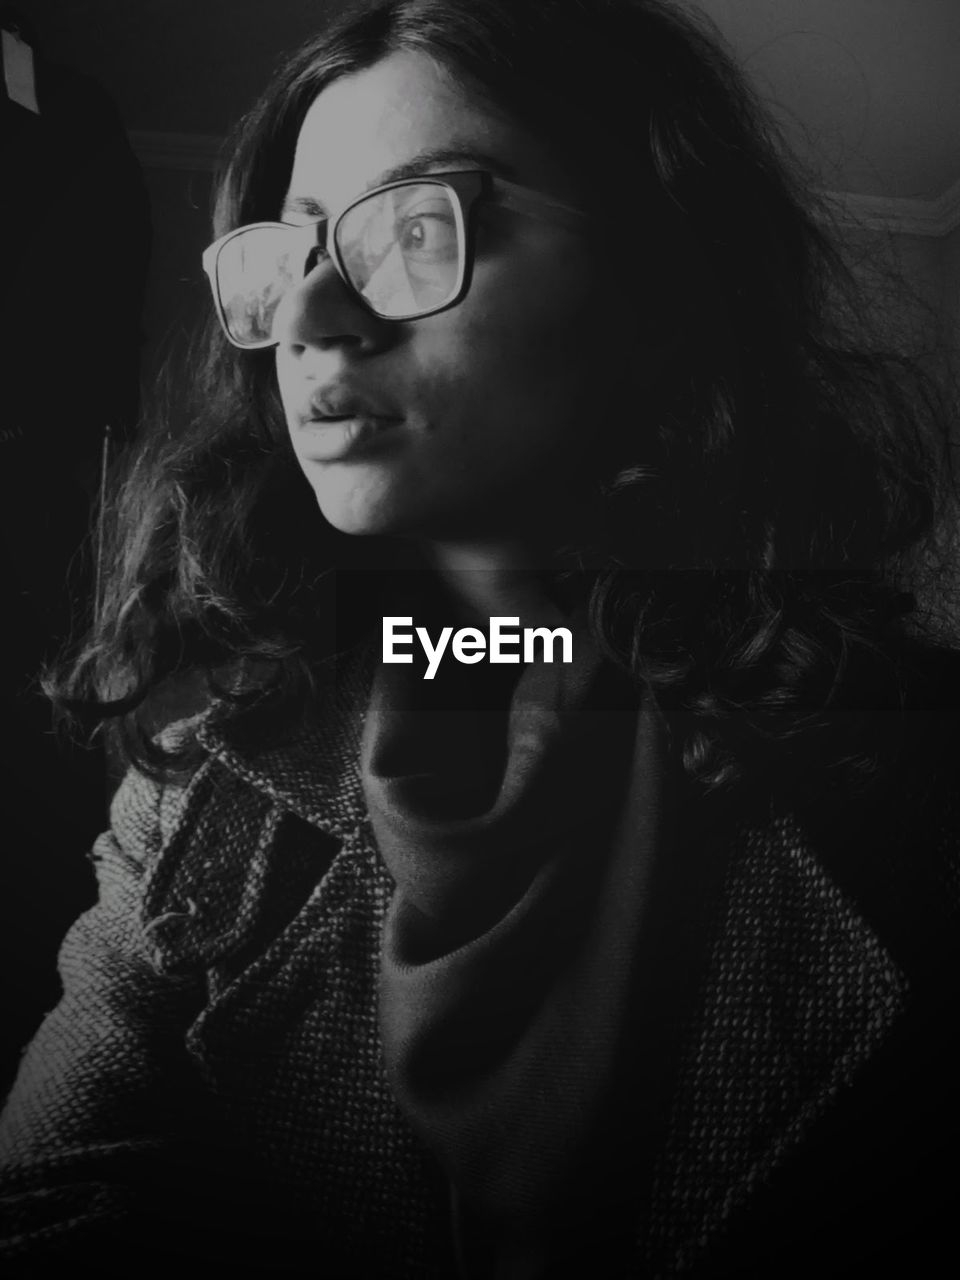 glasses, eyeglasses, headshot, one person, portrait, lifestyles, front view, young adult, indoors, real people, young women, casual clothing, leisure activity, hairstyle, women, looking, close-up, looking away, contemplation, beautiful woman, teenager